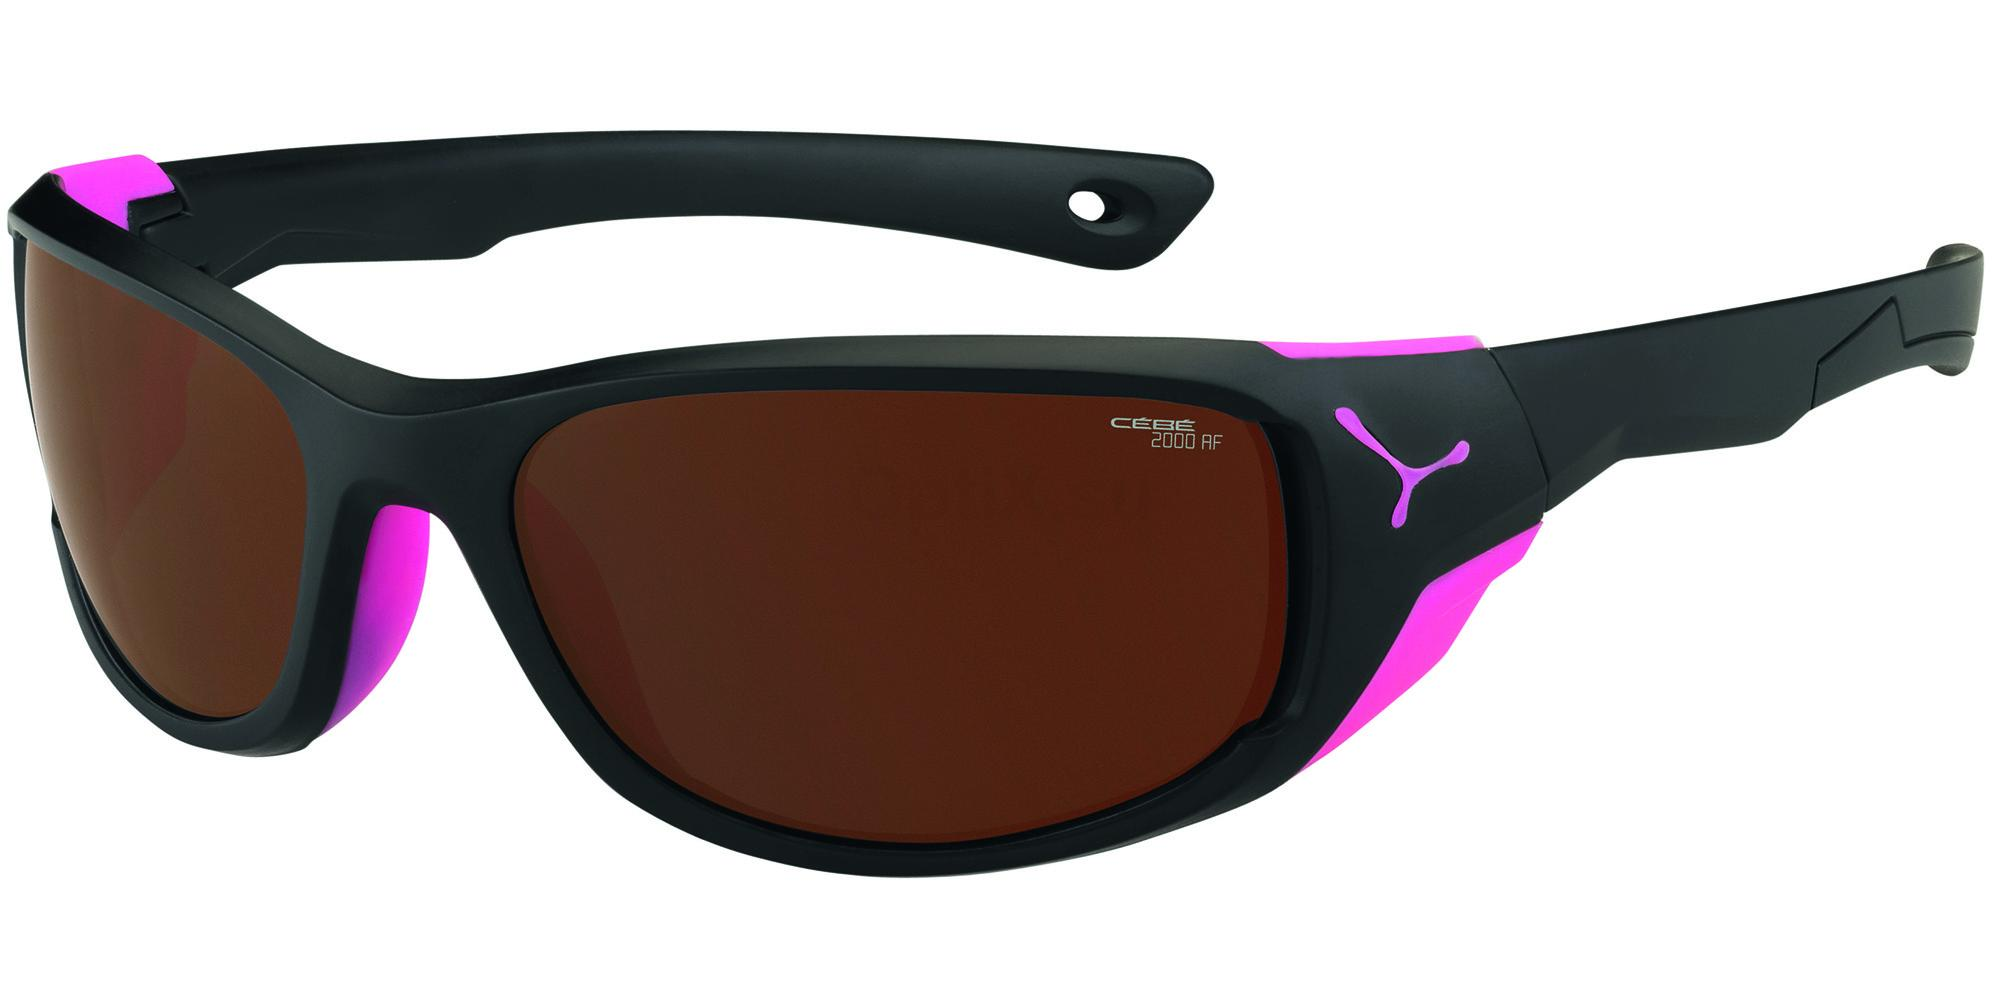 CBJOM1 Jorasses (Medium Fit) Sunglasses, Cebe